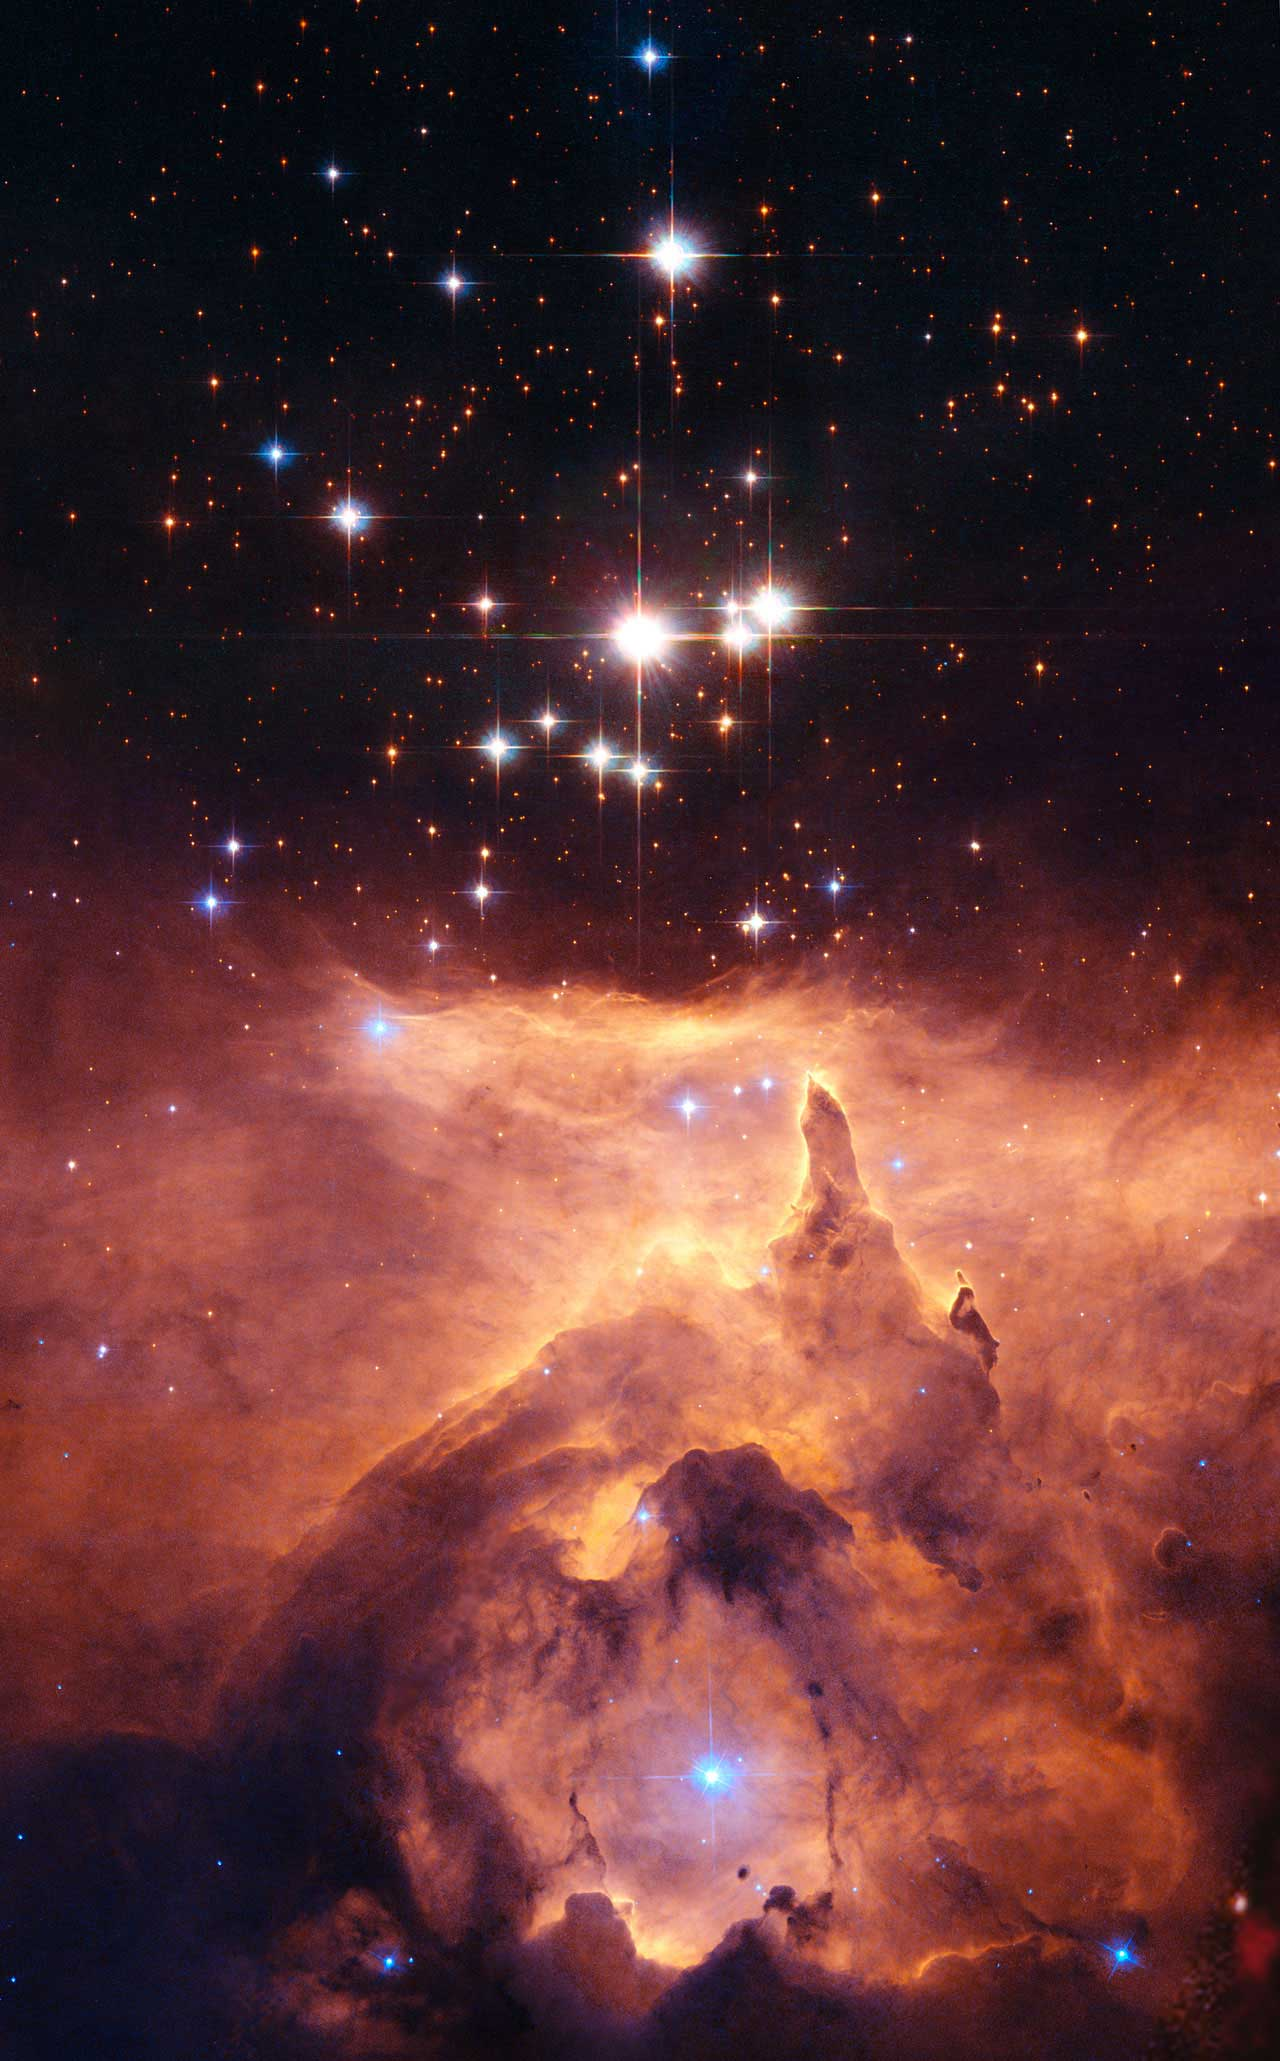 <strong>Pismis 24</strong>:                                   The small open star cluster Pismis 24 lies in the core of the large emission nebula NGC 6357 in Scorpius, about 8,000 light-years away from Earth. The brightest object in the picture is designated Pismis 24-1. It was once thought to weigh as much as 200 to 300 solar masses. This would not only have made it by far the most massive known star in the galaxy, but would have put it considerably above the currently believed upper mass limit of about 150 solar masses for individual stars.                                                                      However, Hubble Space Telescope high-resolution images of the star show that it is really two stars orbiting one another. They are estimated to each be 100 solar masses.                                   <i>Image released on Dec. 11, 2006</i>